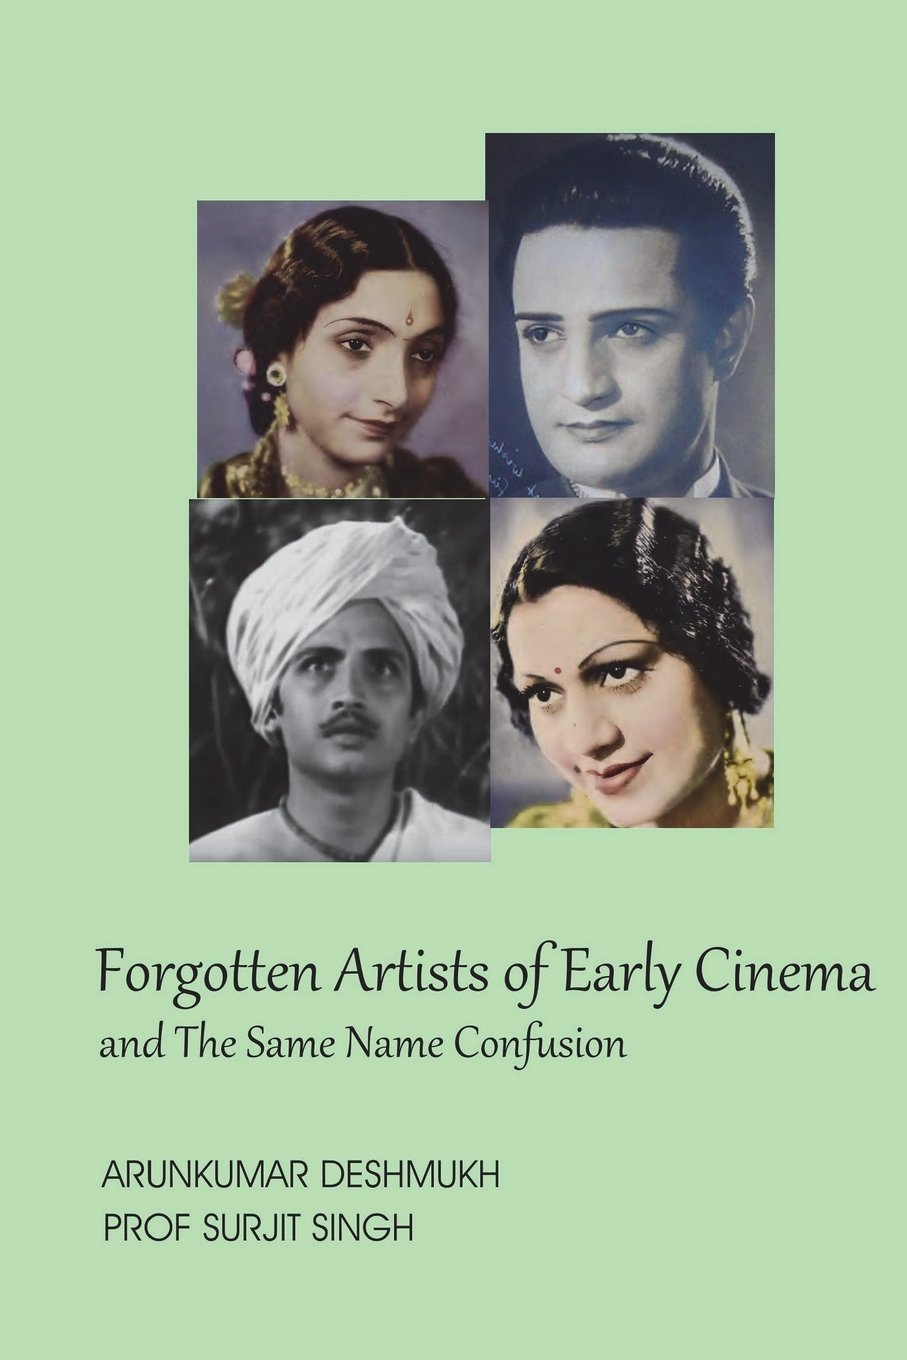 Forgotten Artists of Early Cinema: and The Same Name Confusion PDF